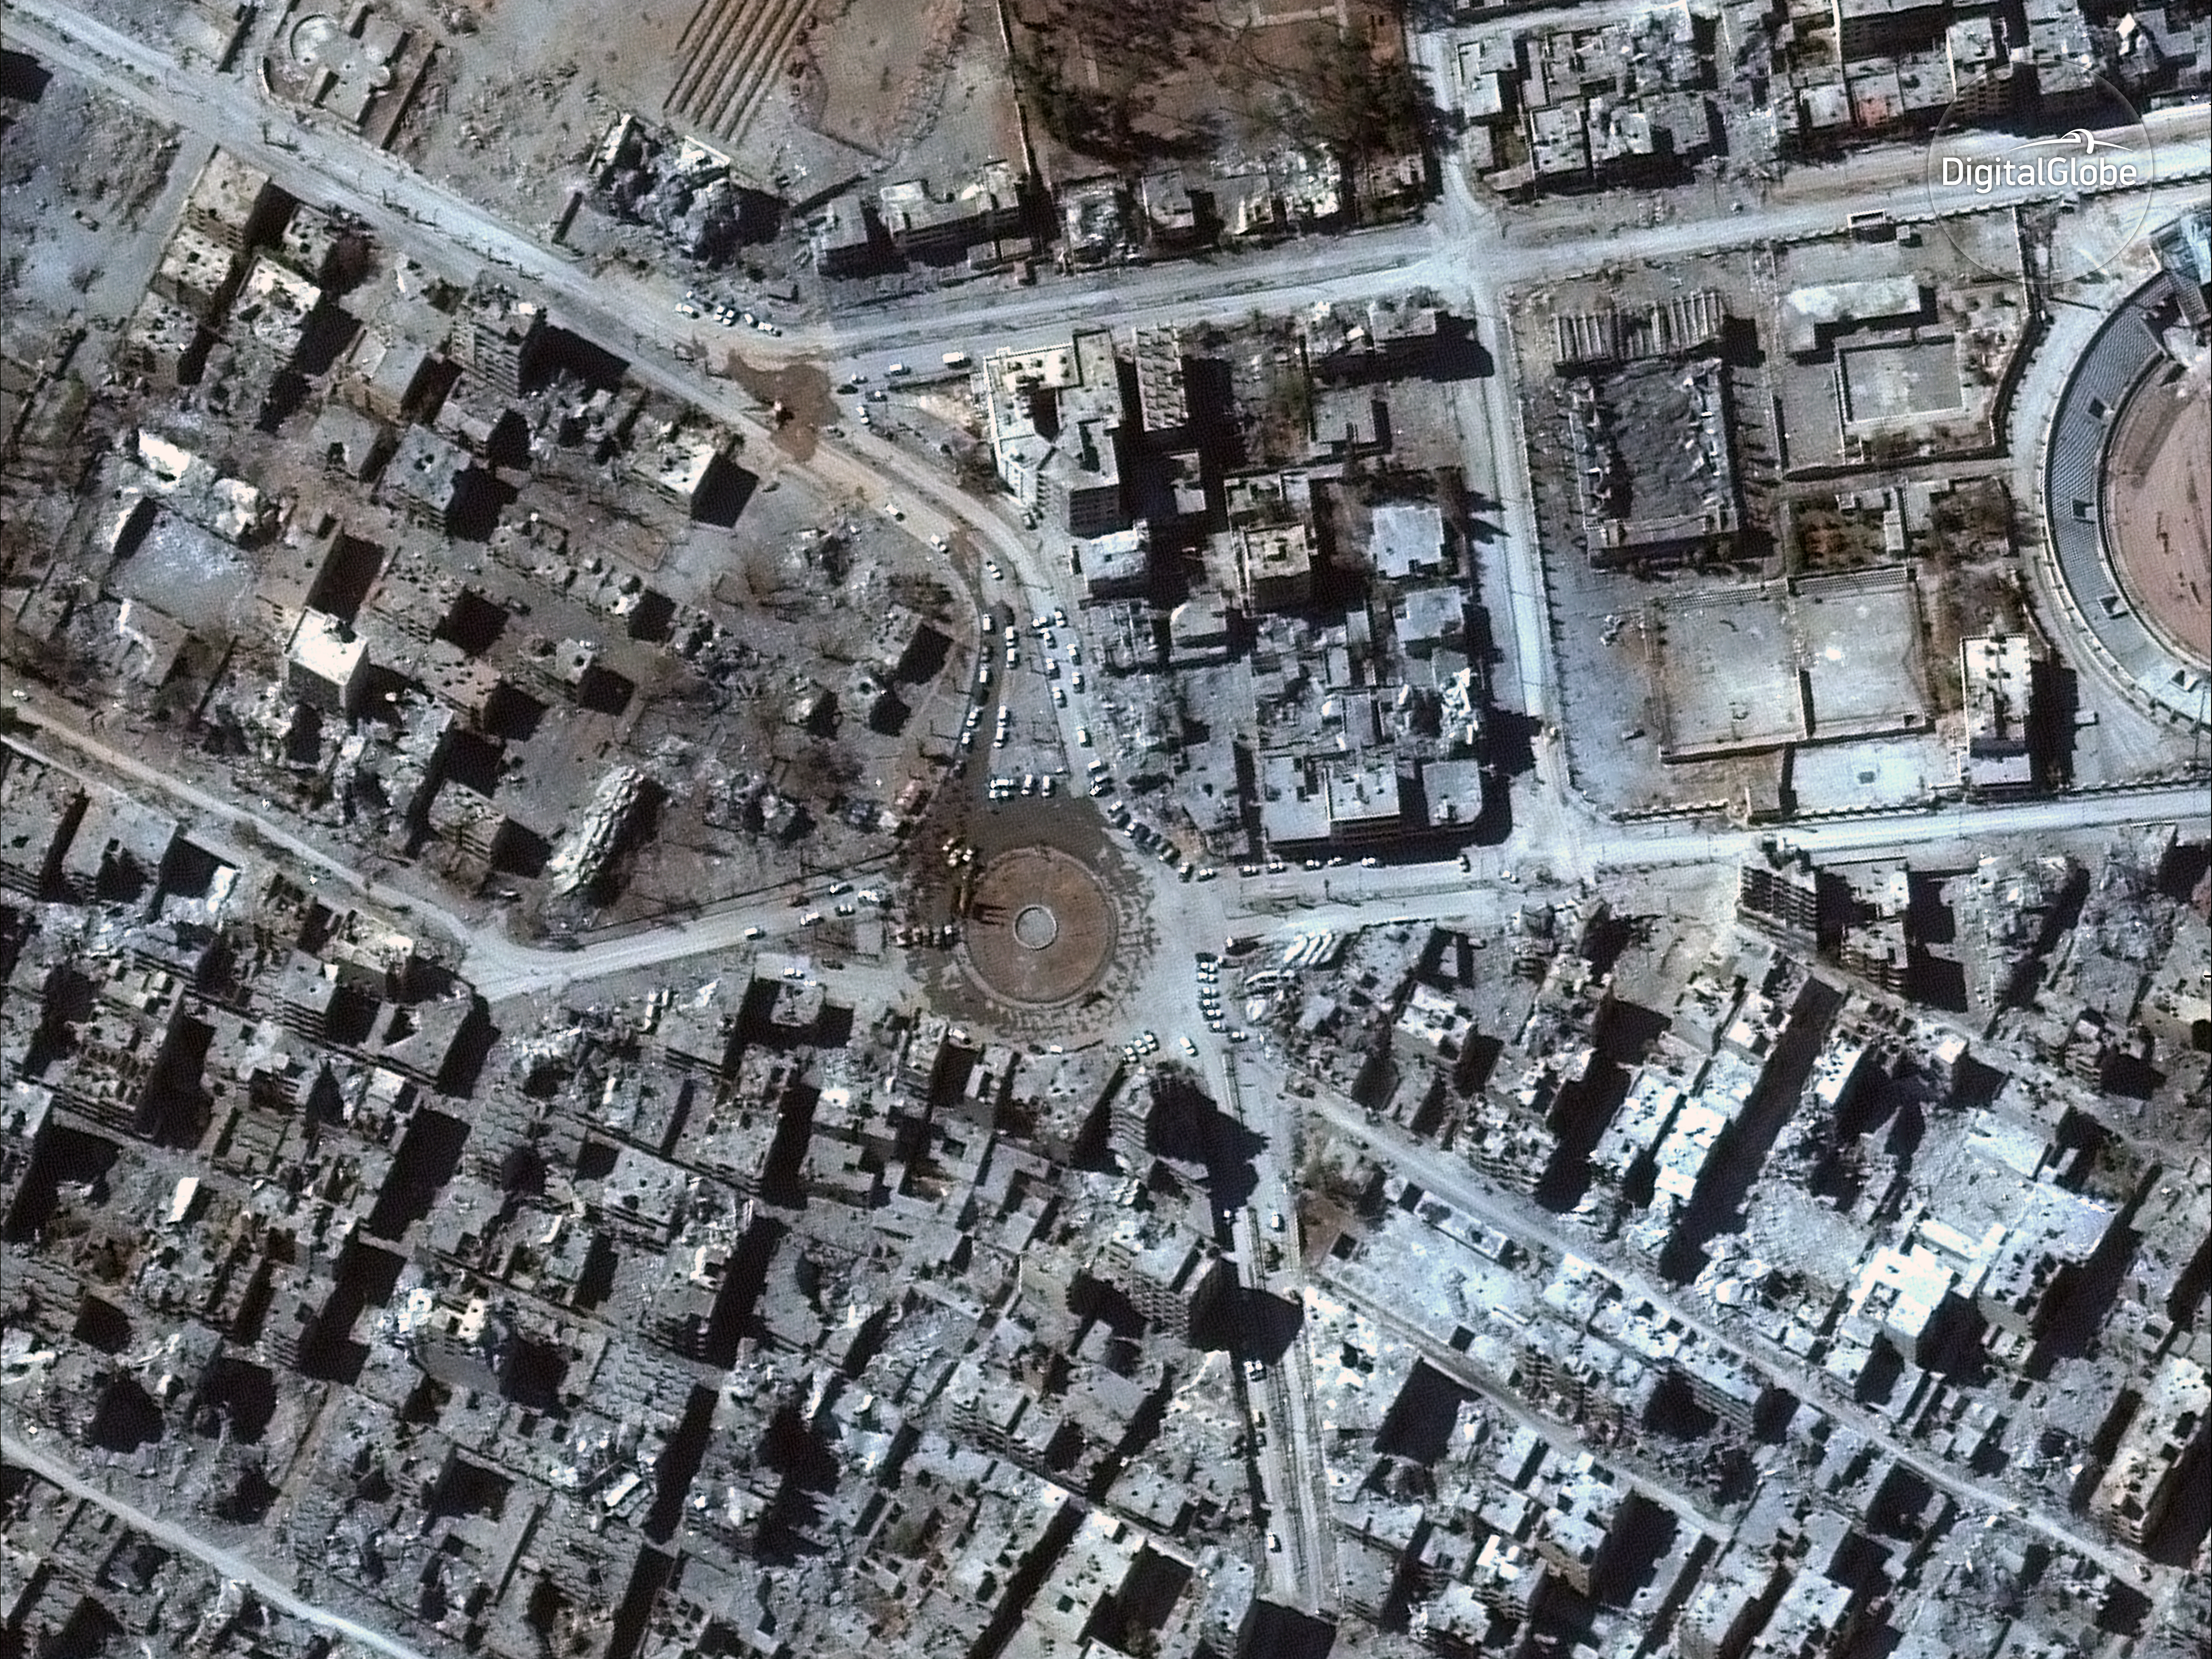 Satellite leaders say the government needs to move faster in weighing changes to industry regulations. Companies such as Maxar, formerly known as DigitalGlobe, produce images such as the one above showing Syrian forces gathered in iconic Al-Naim square surrounded by the ruins of destroyed buildings. (satellite image DigitalGlobe)